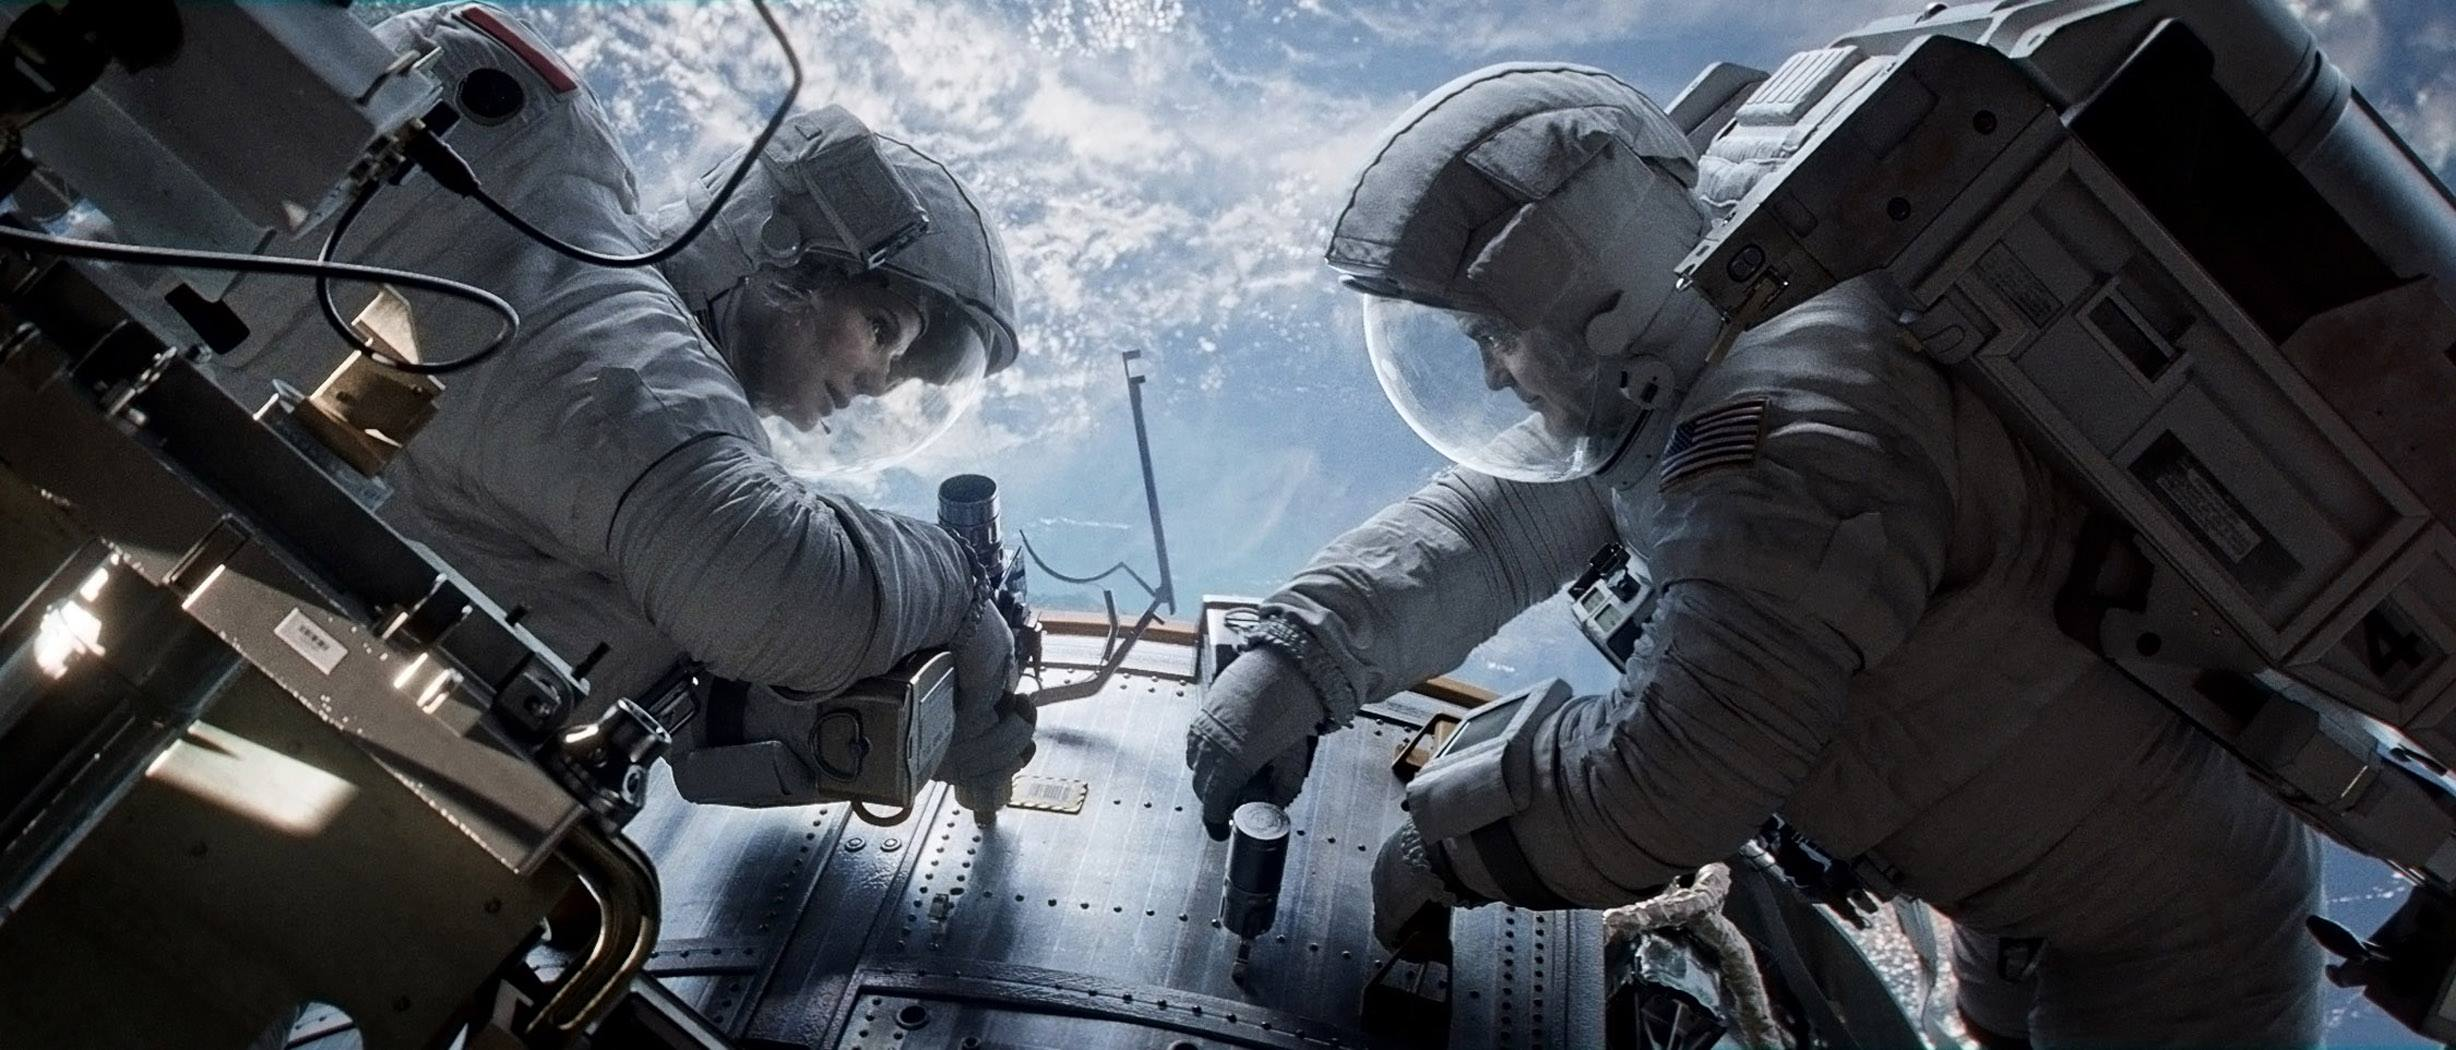 Gravity (2013) Directed by Alfonso Cuaron - Movie Review - Image 7